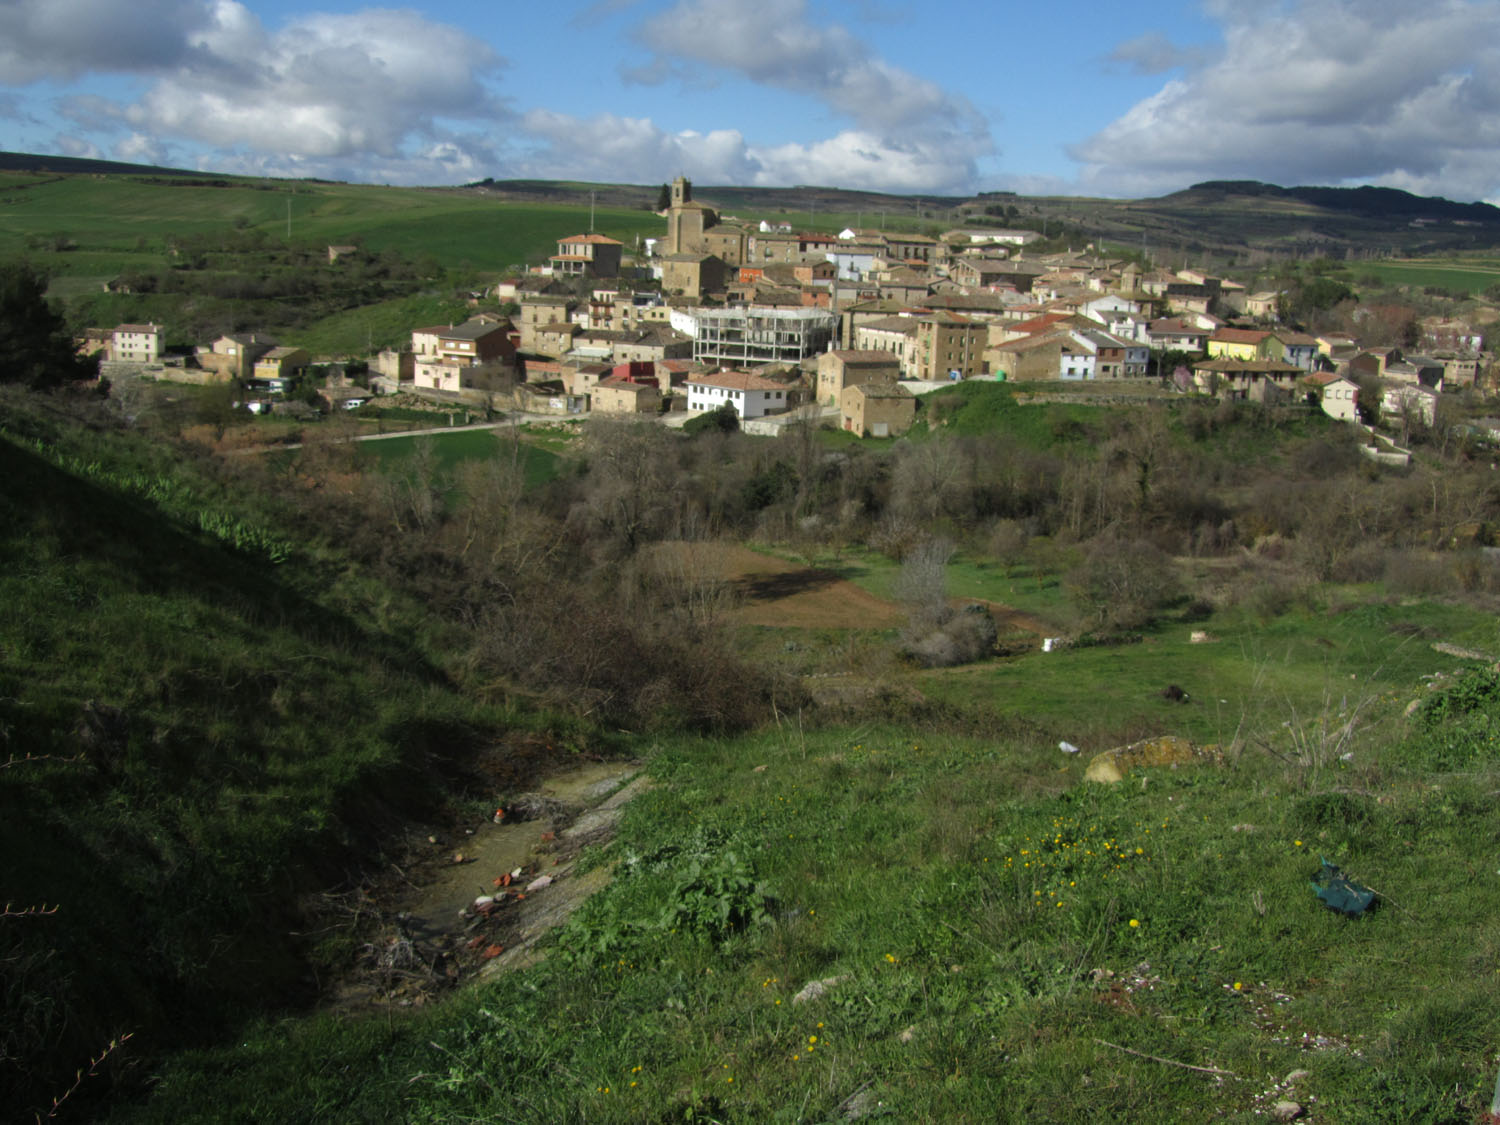 Camino-De-Santiago-Sights-And-Scenery-Hill-Town